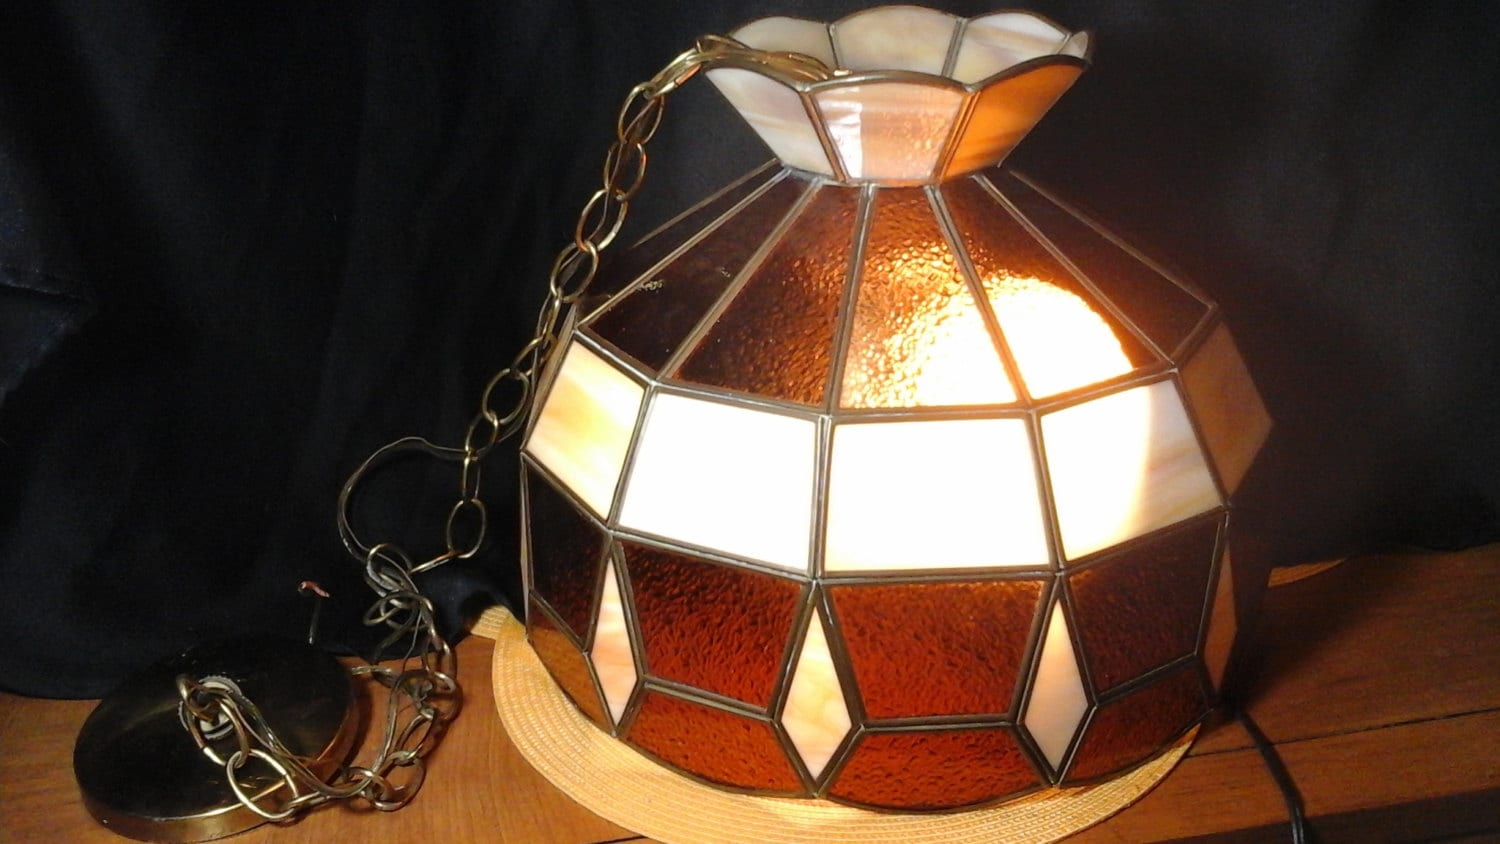 70s light fixture stained glass light fixture by hillsidehomearts. Black Bedroom Furniture Sets. Home Design Ideas